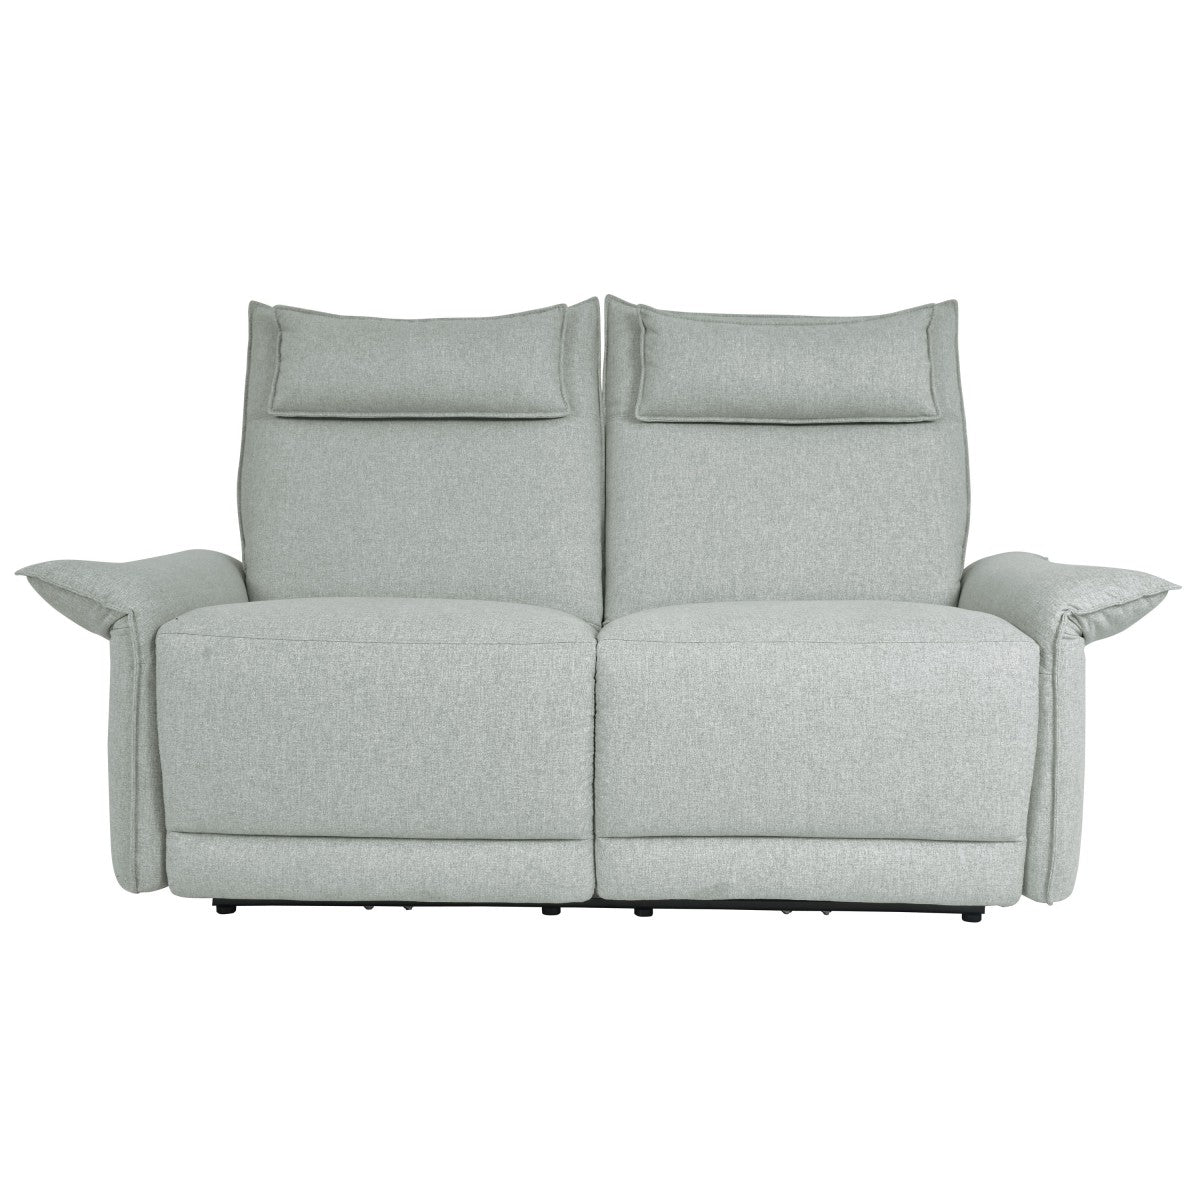 Homelegance Linette Taupe Polyester Finish Power Reclining Loveseat